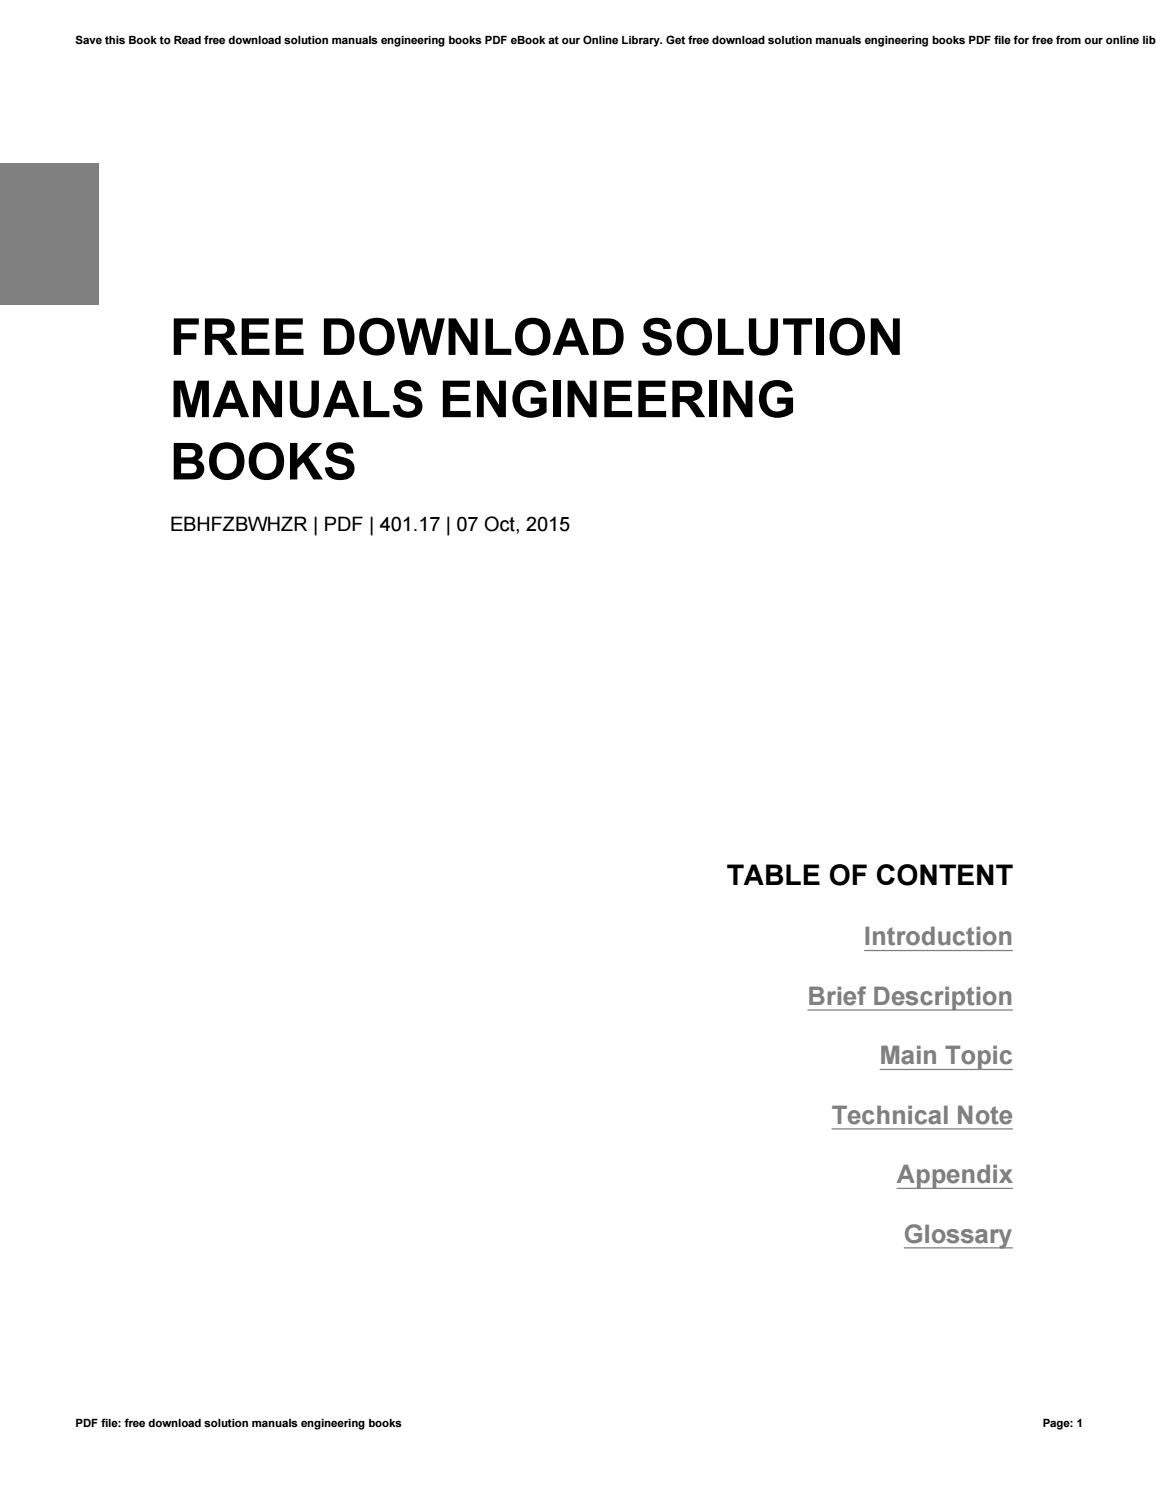 Ebook-3497] free solution manual download engineering books | 2019.